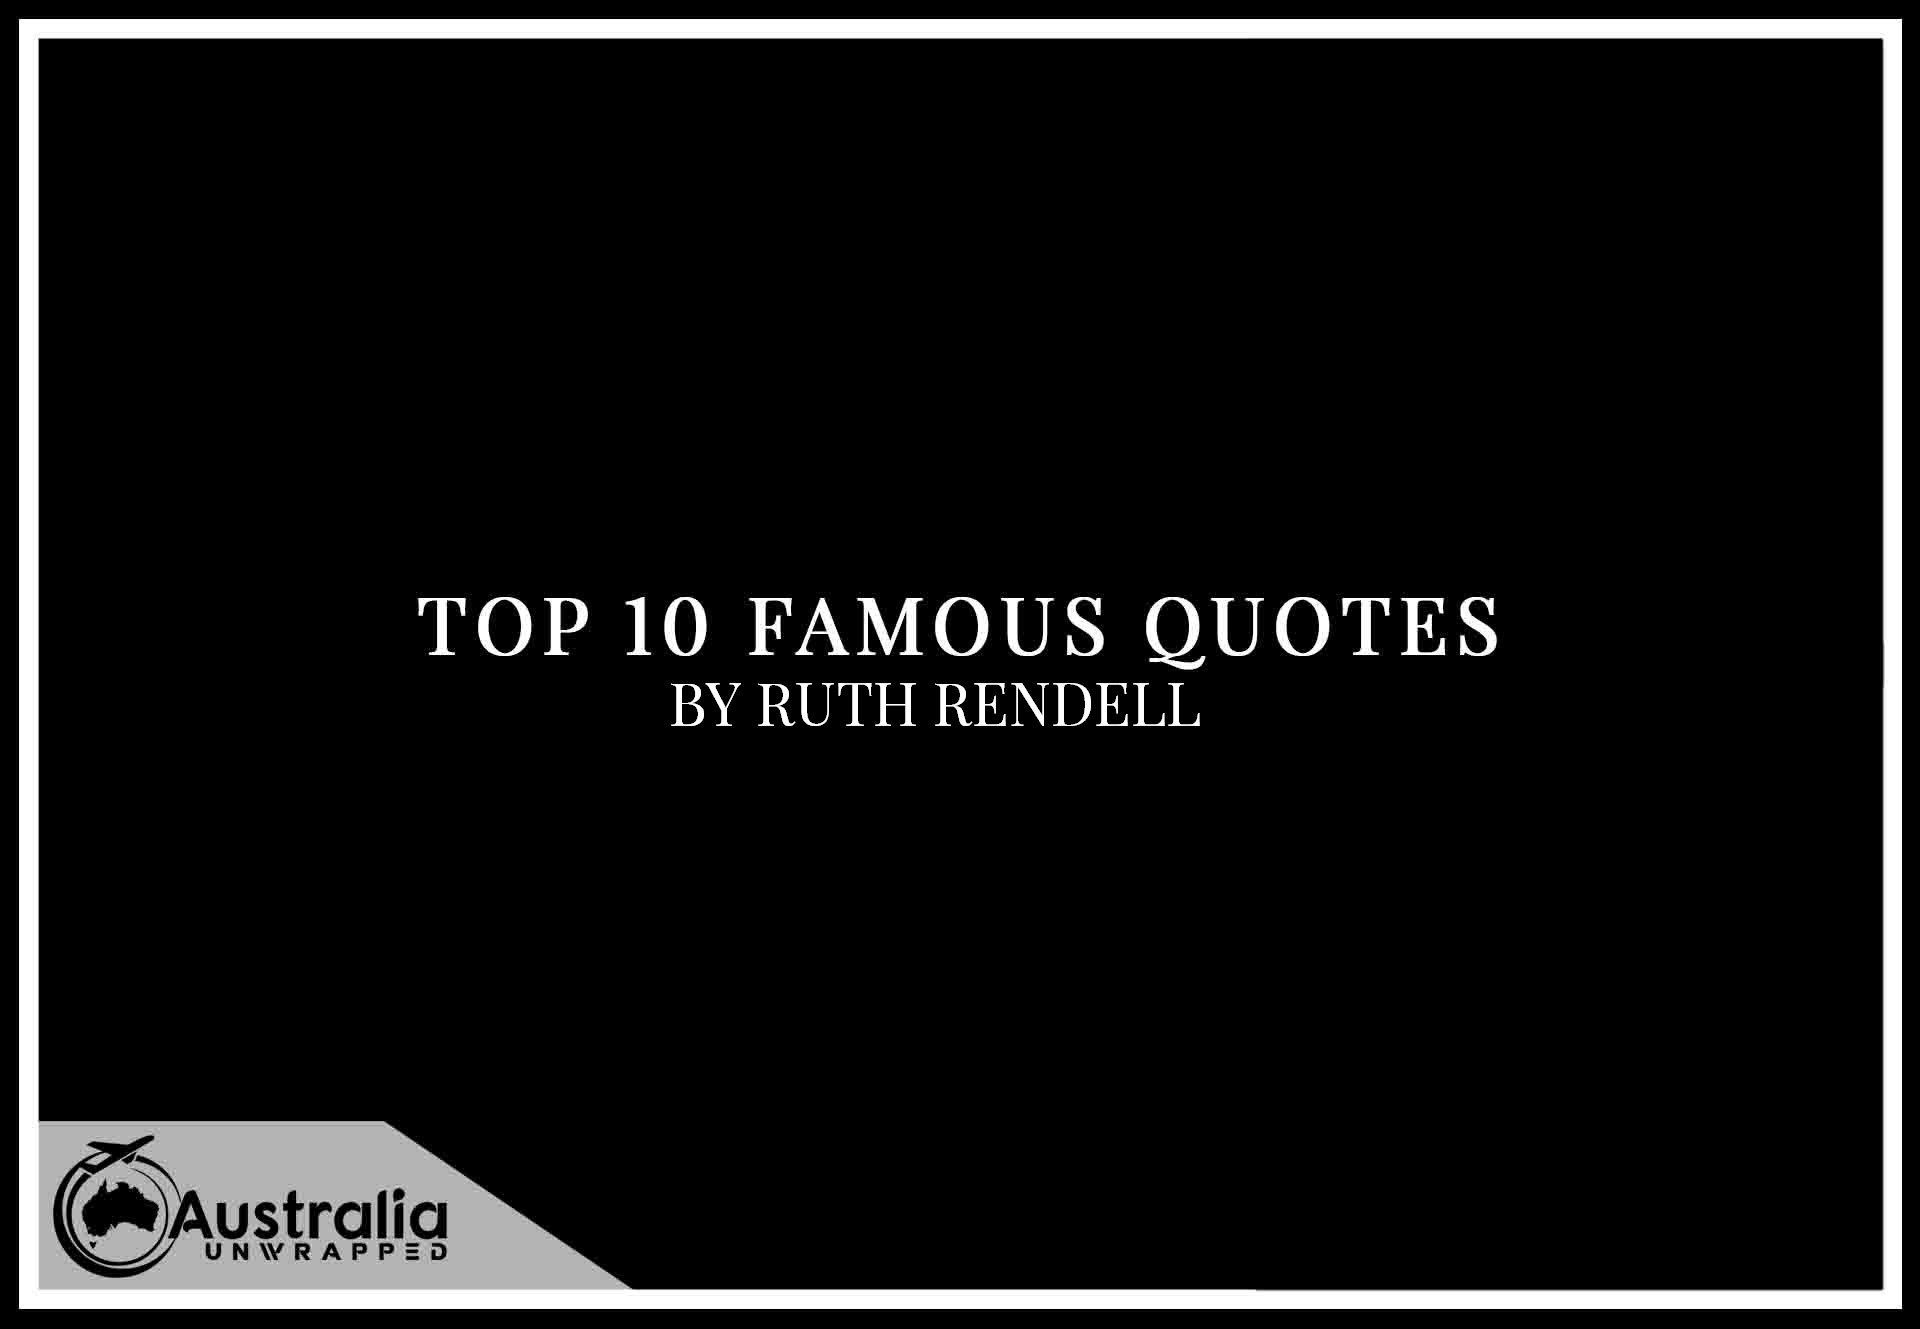 Top 10 Famous Quotes by Author Ruth Rendell